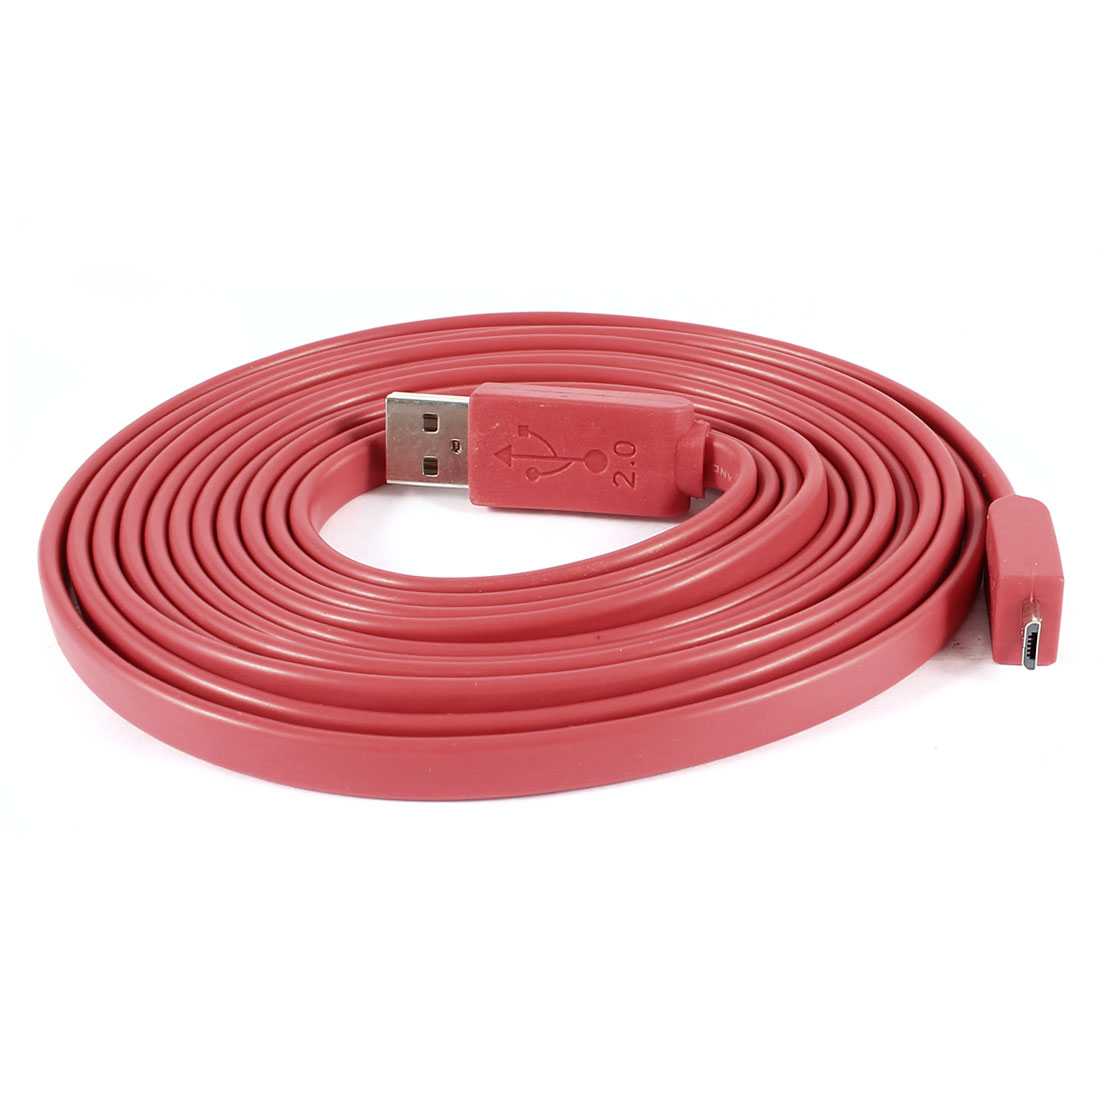 USB 2.0 Type A Male to Micro USB Male High Speed Flat Cable Cord Red 3Meter